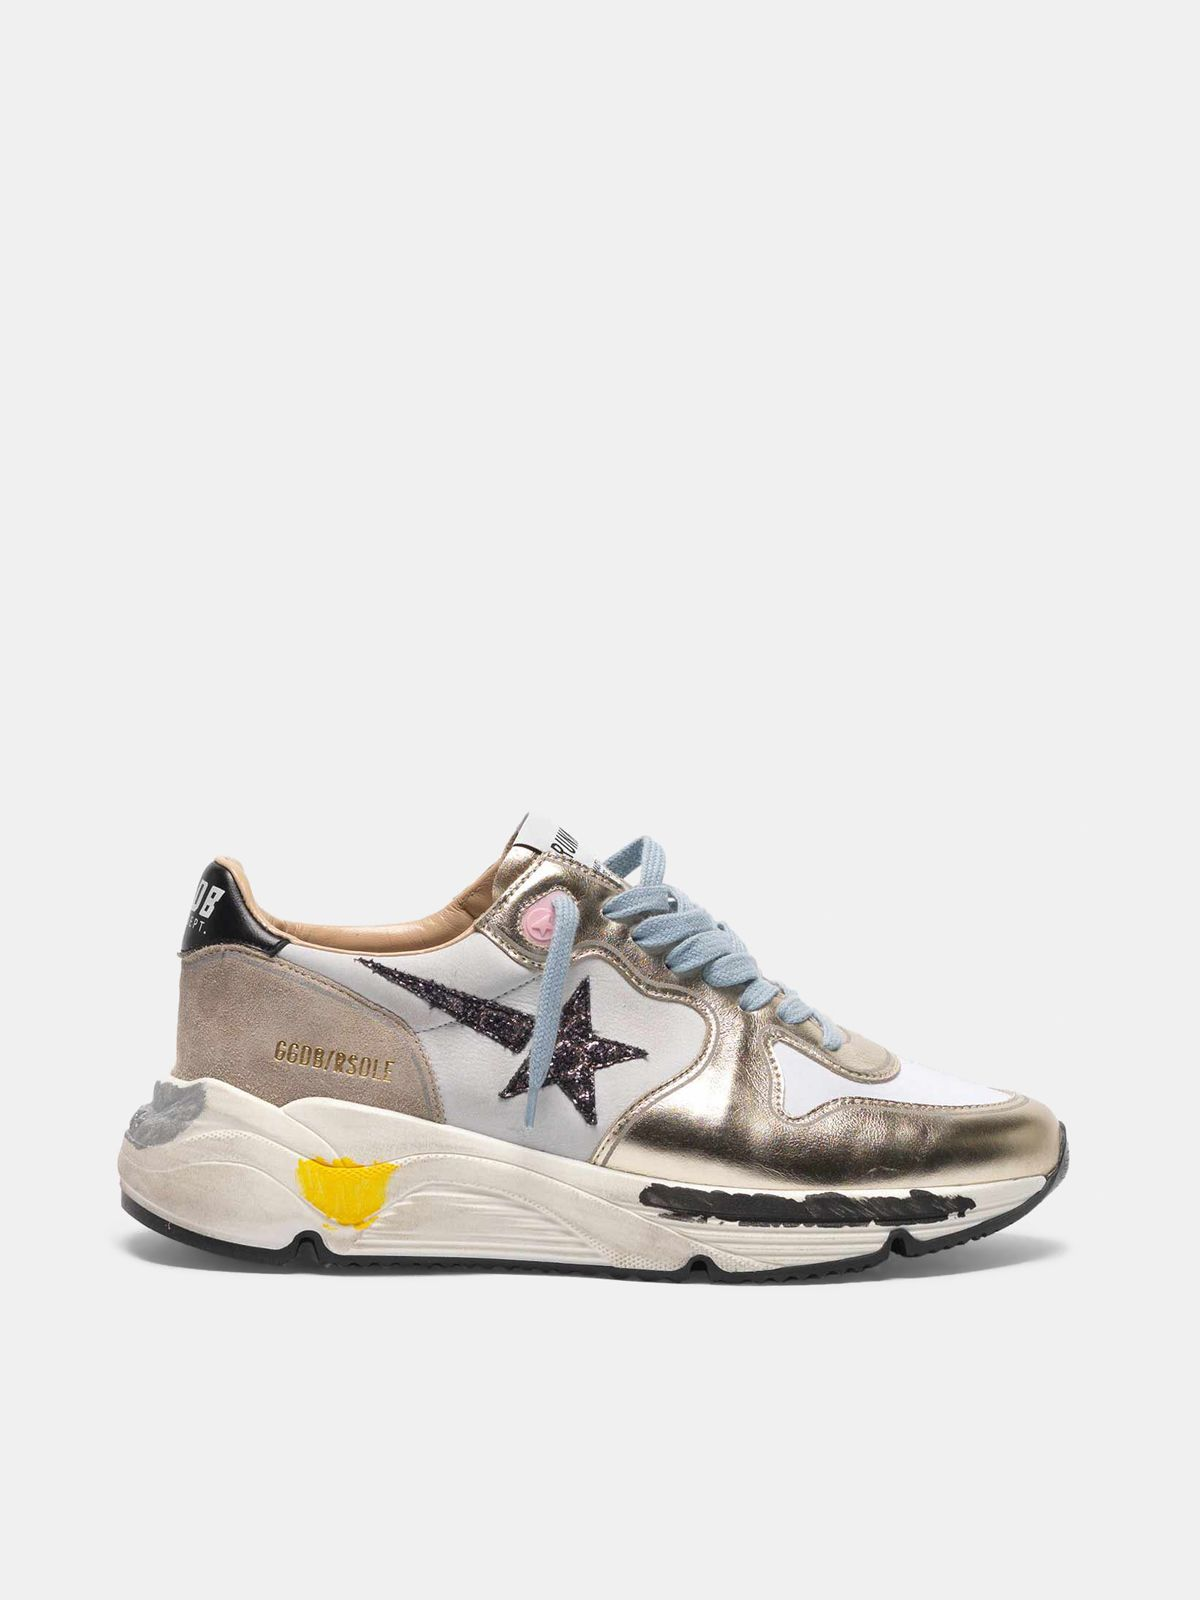 Golden Goose - Laminated Running sneakers, nubuck insert and glittery star in